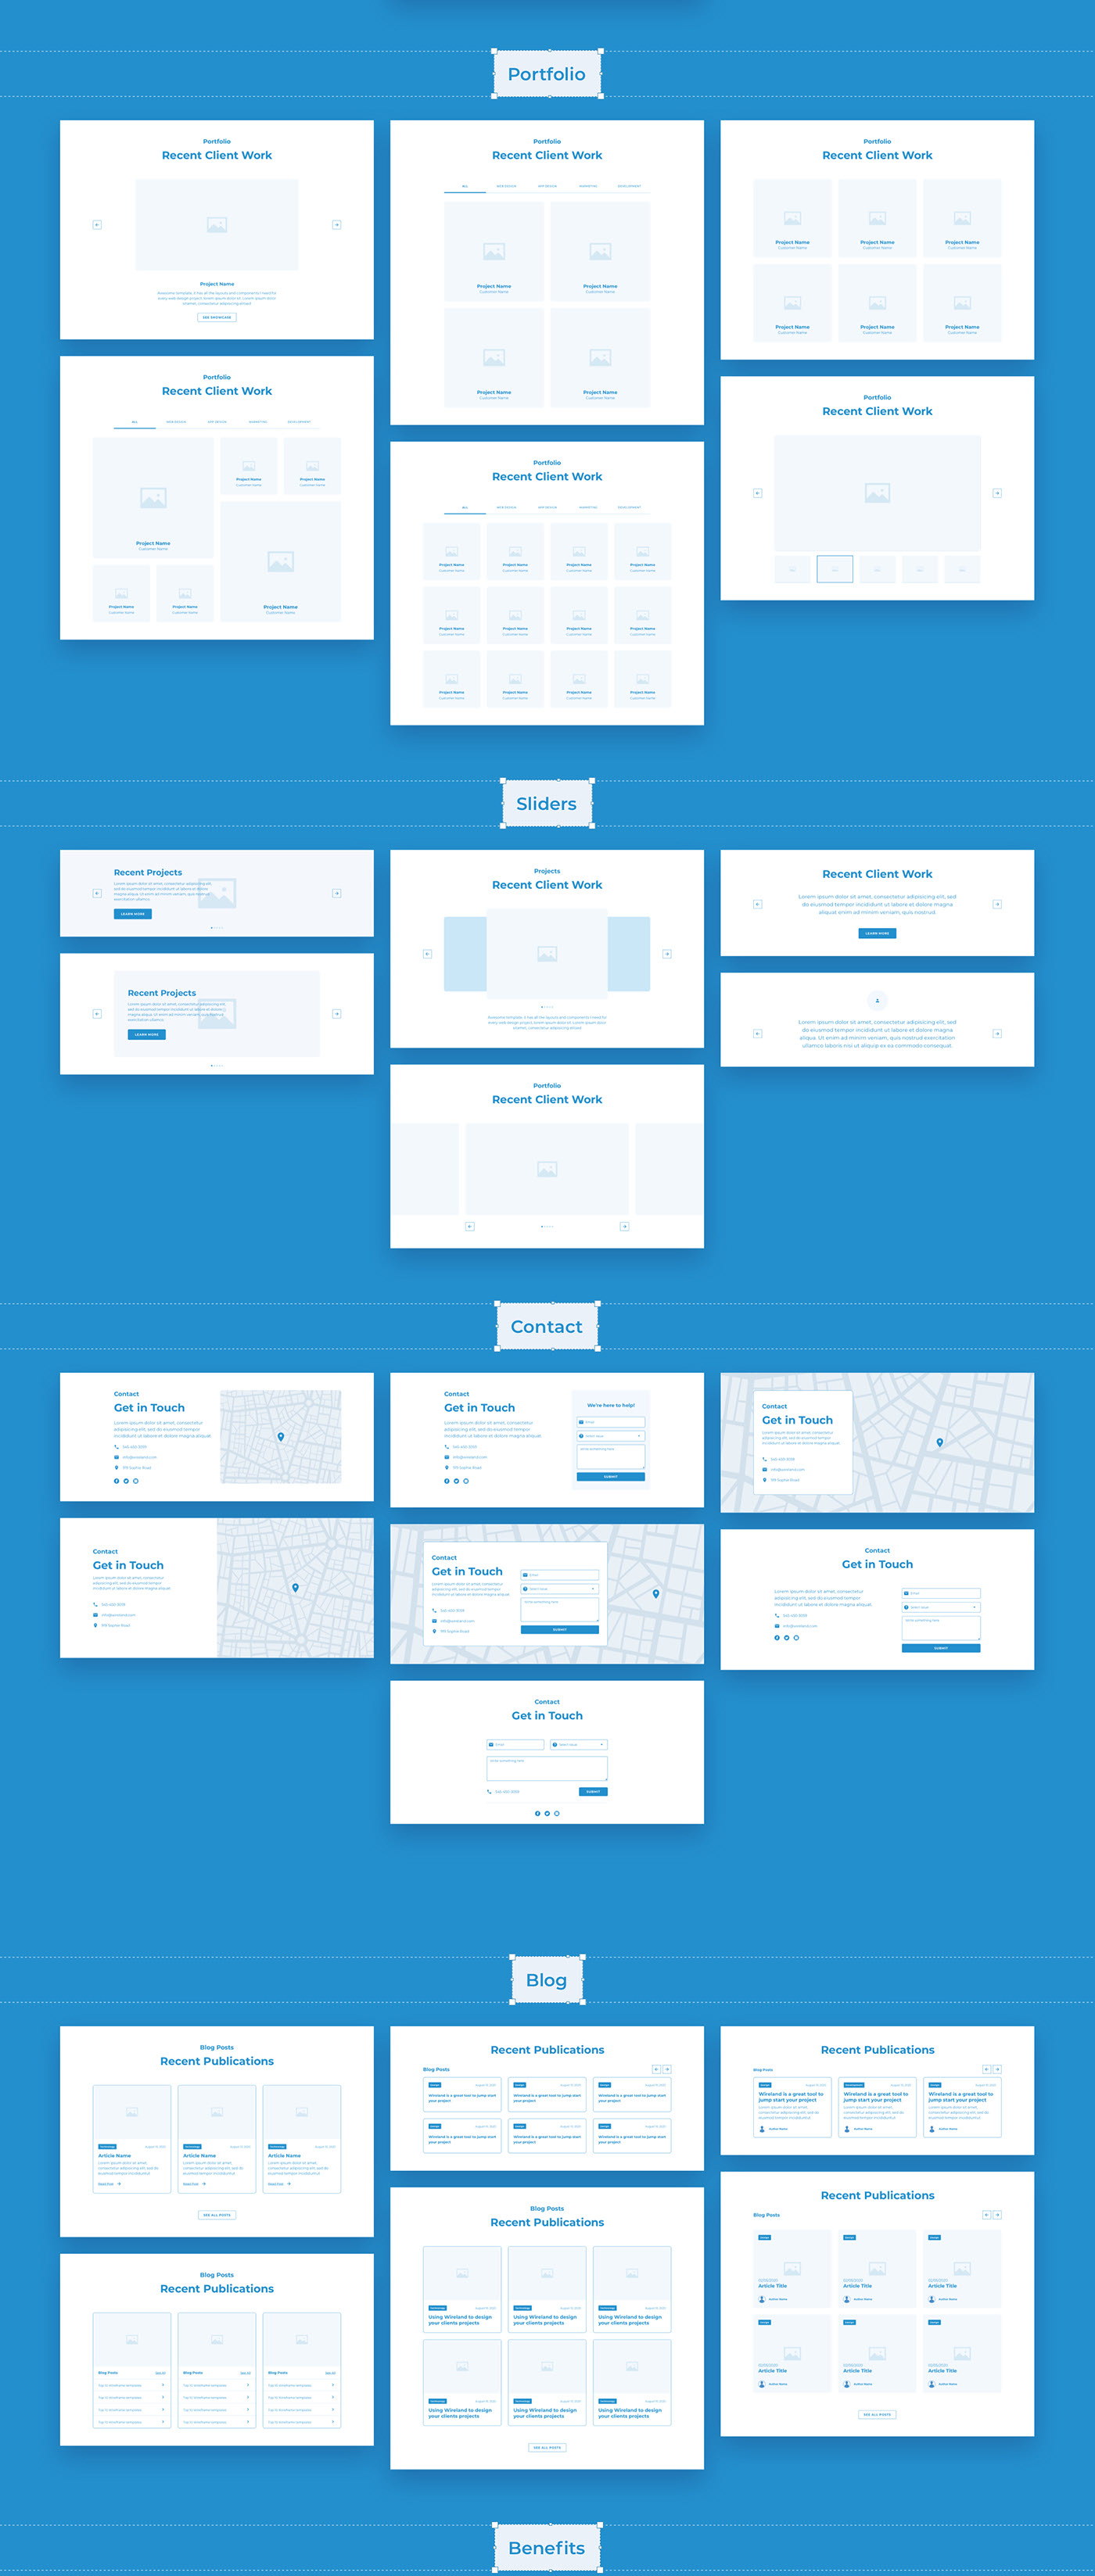 23be9757728315.5f82276d388c6 - Wireland - Wireframe Library for Web Design Projects - Sketch Template